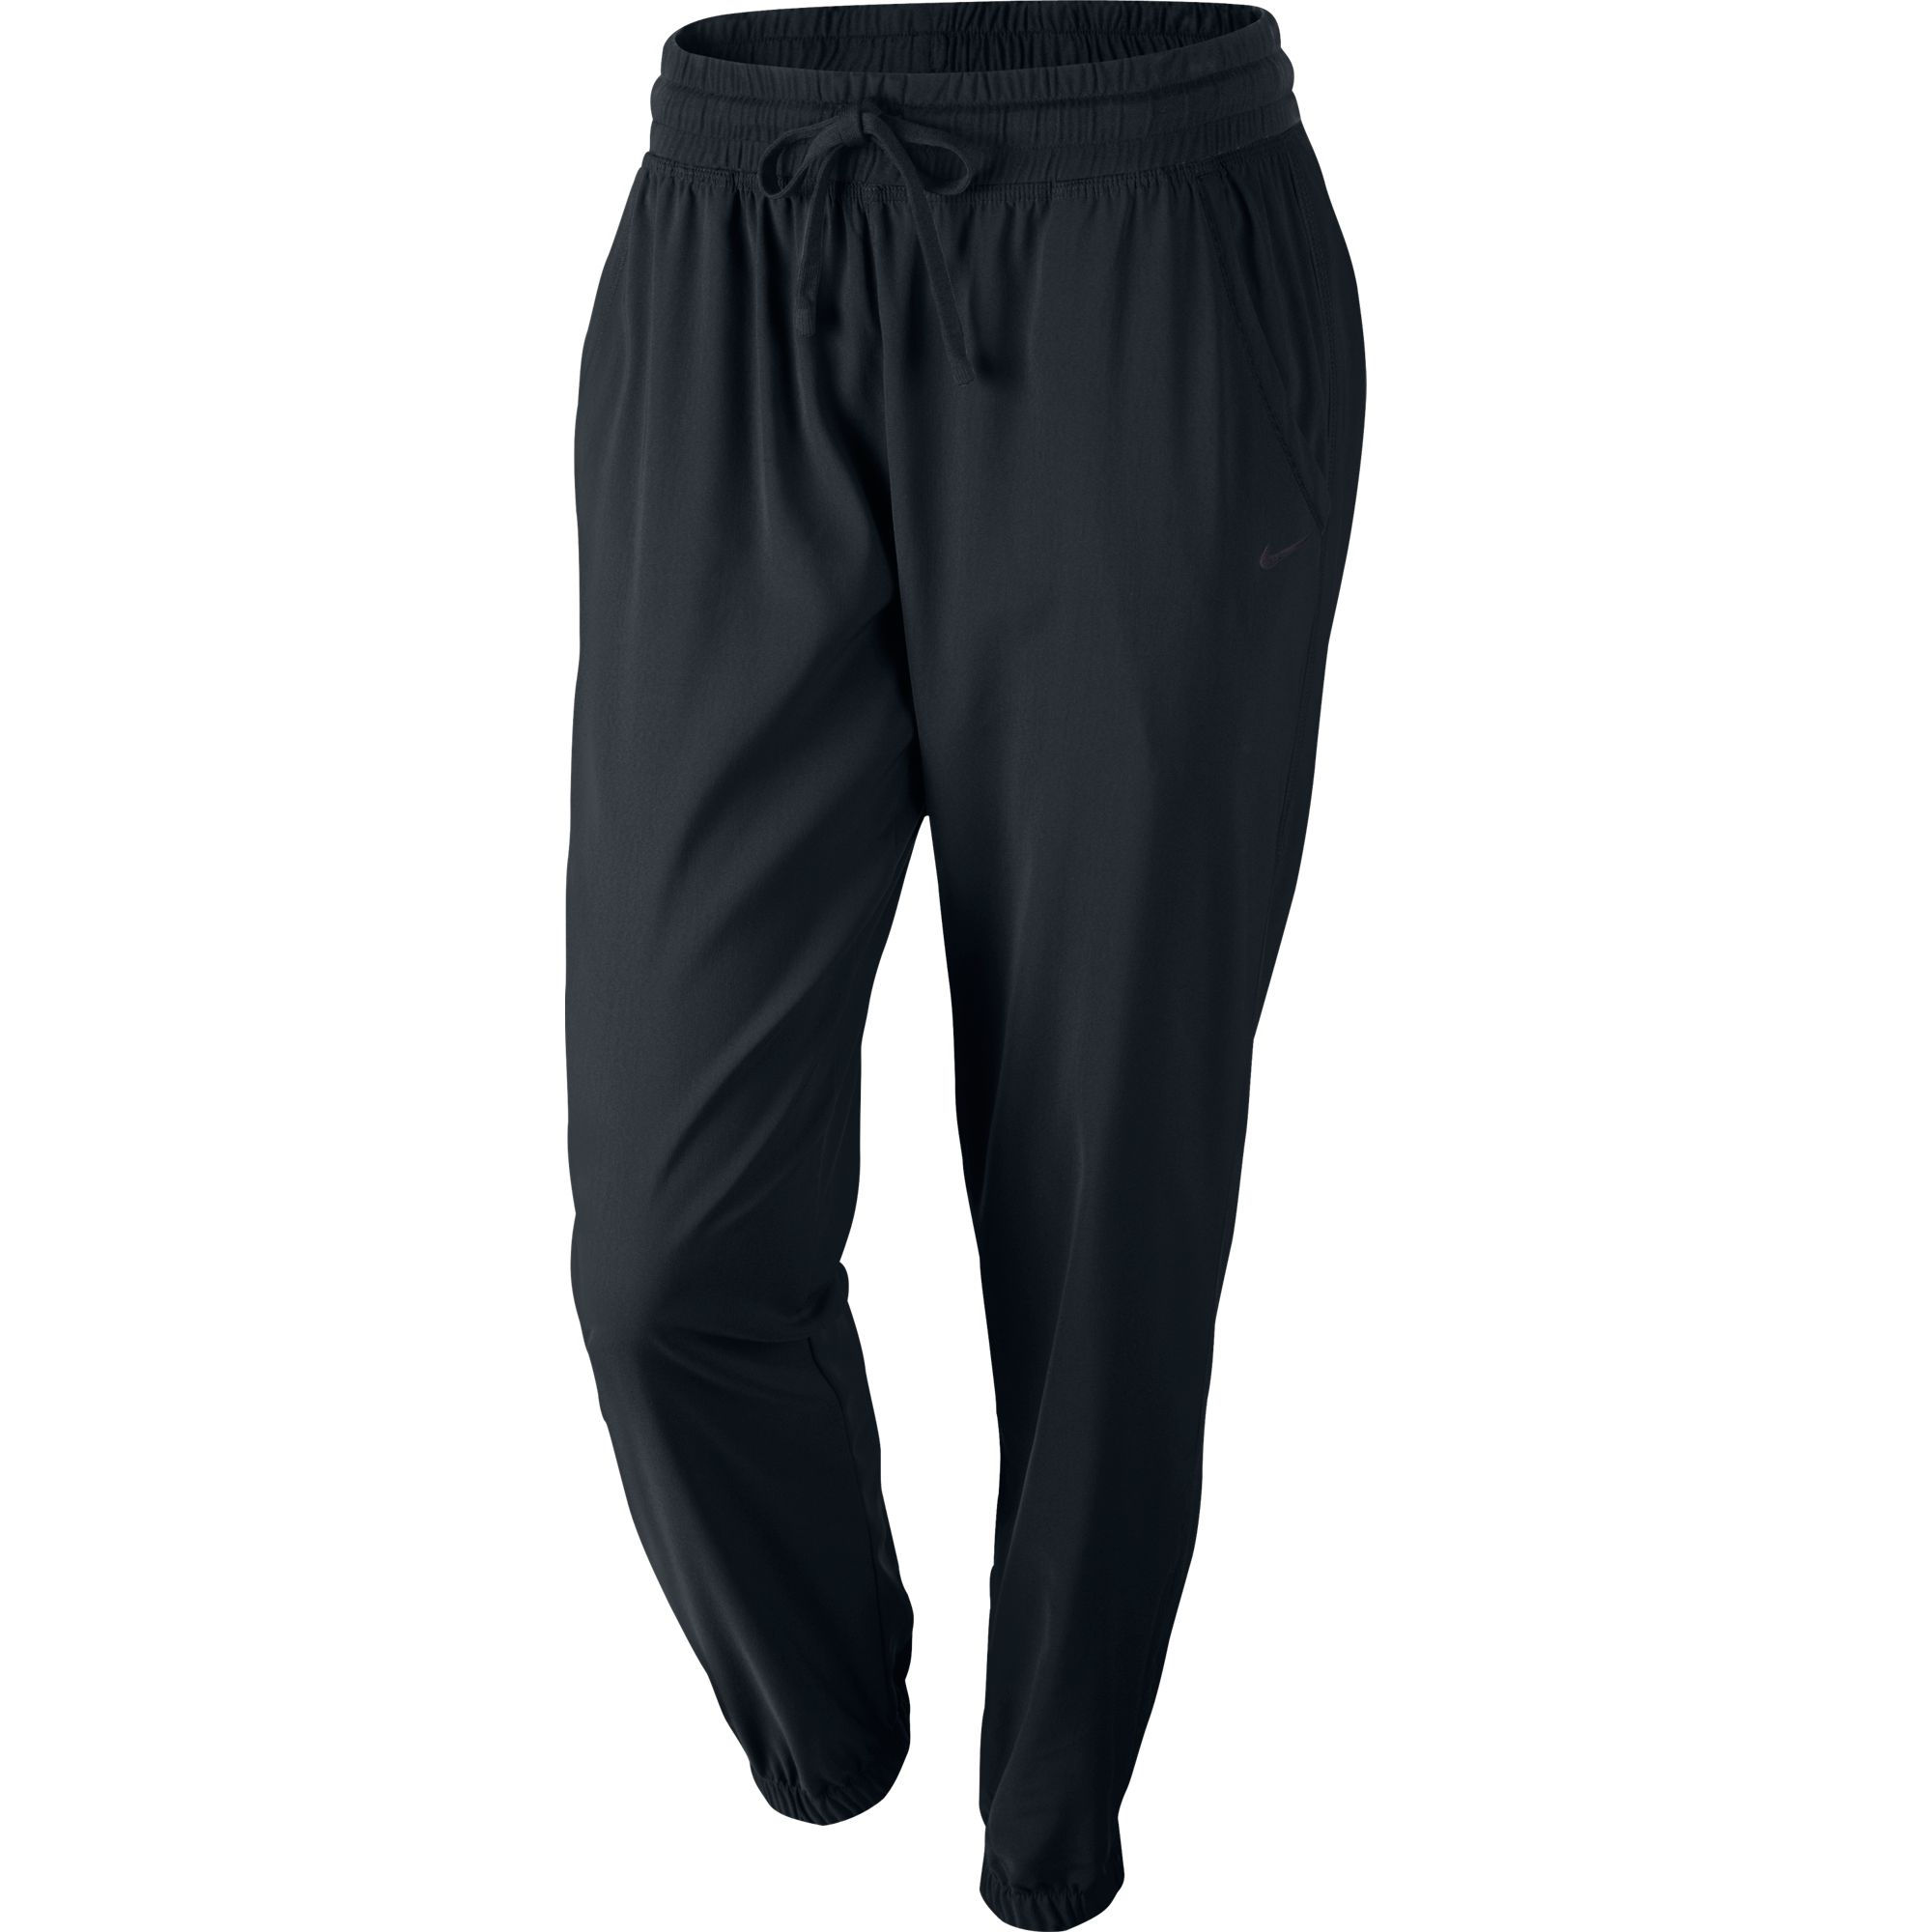 Model Nike Woven Loose Women39s Running Pants From Nike  Things I Want